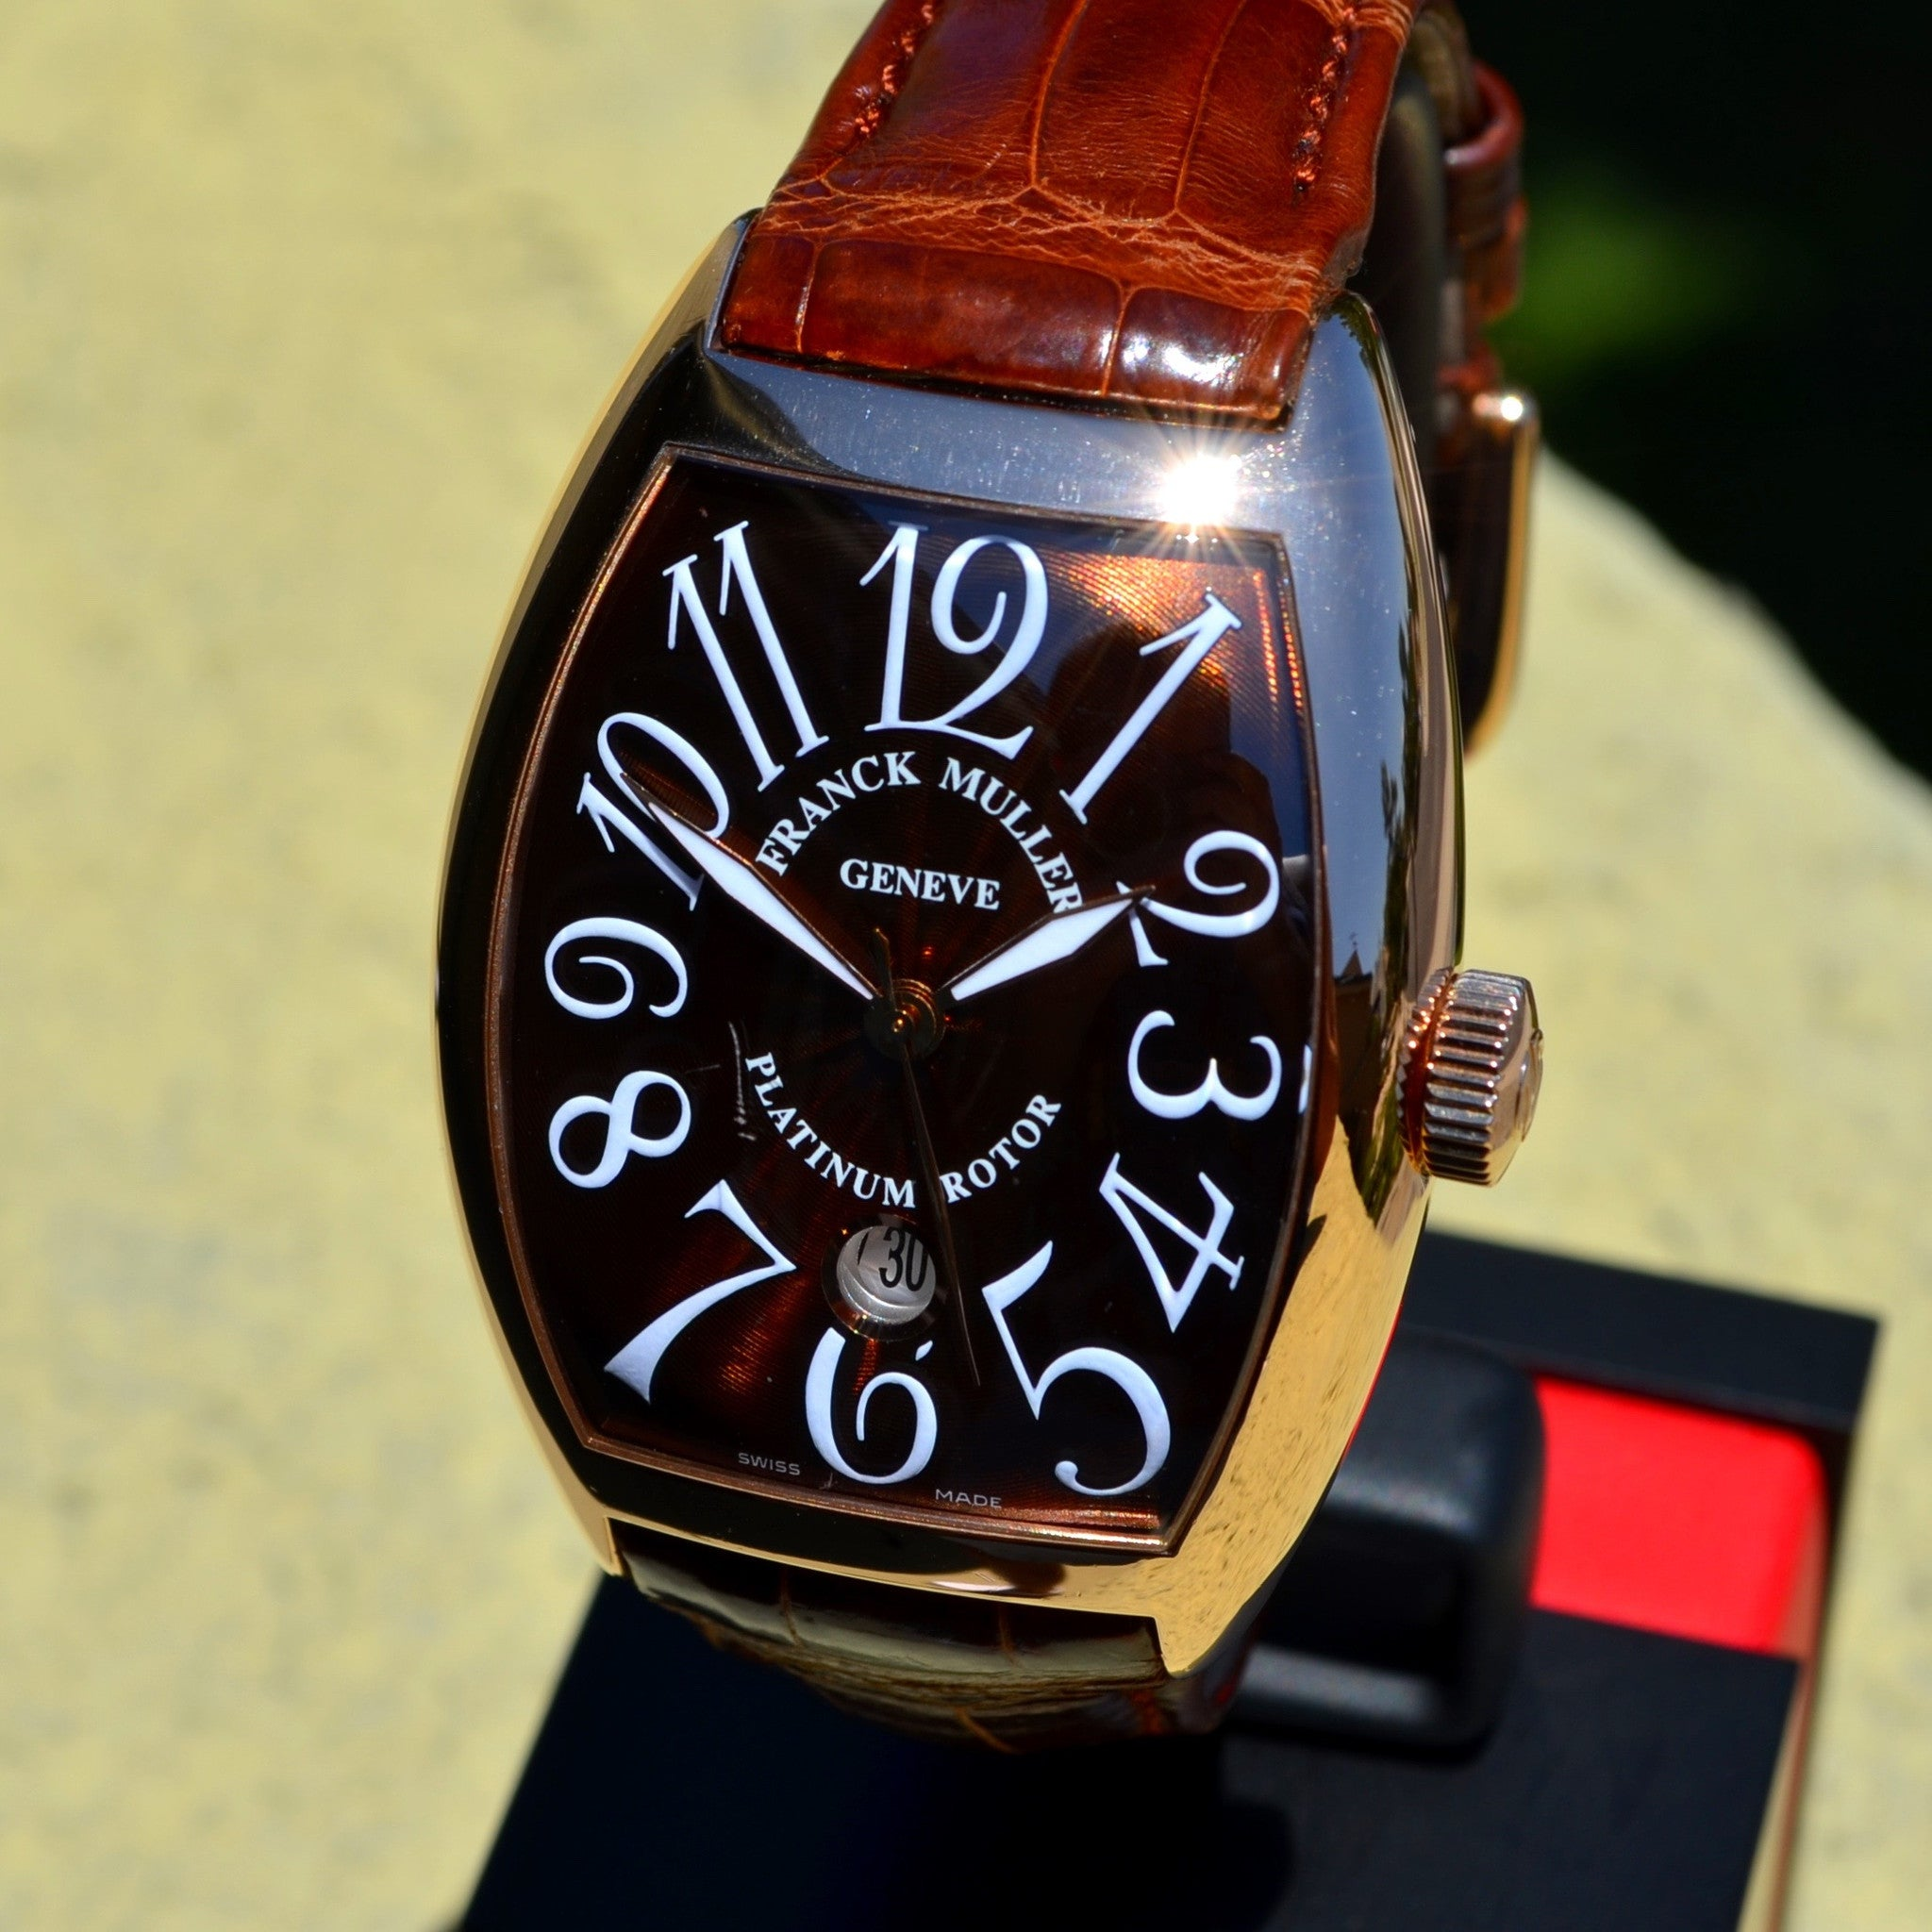 Franck Muller 8880 SC DT 18K Rose Gold XL Curvex Automatic Platinum Rotor Watch